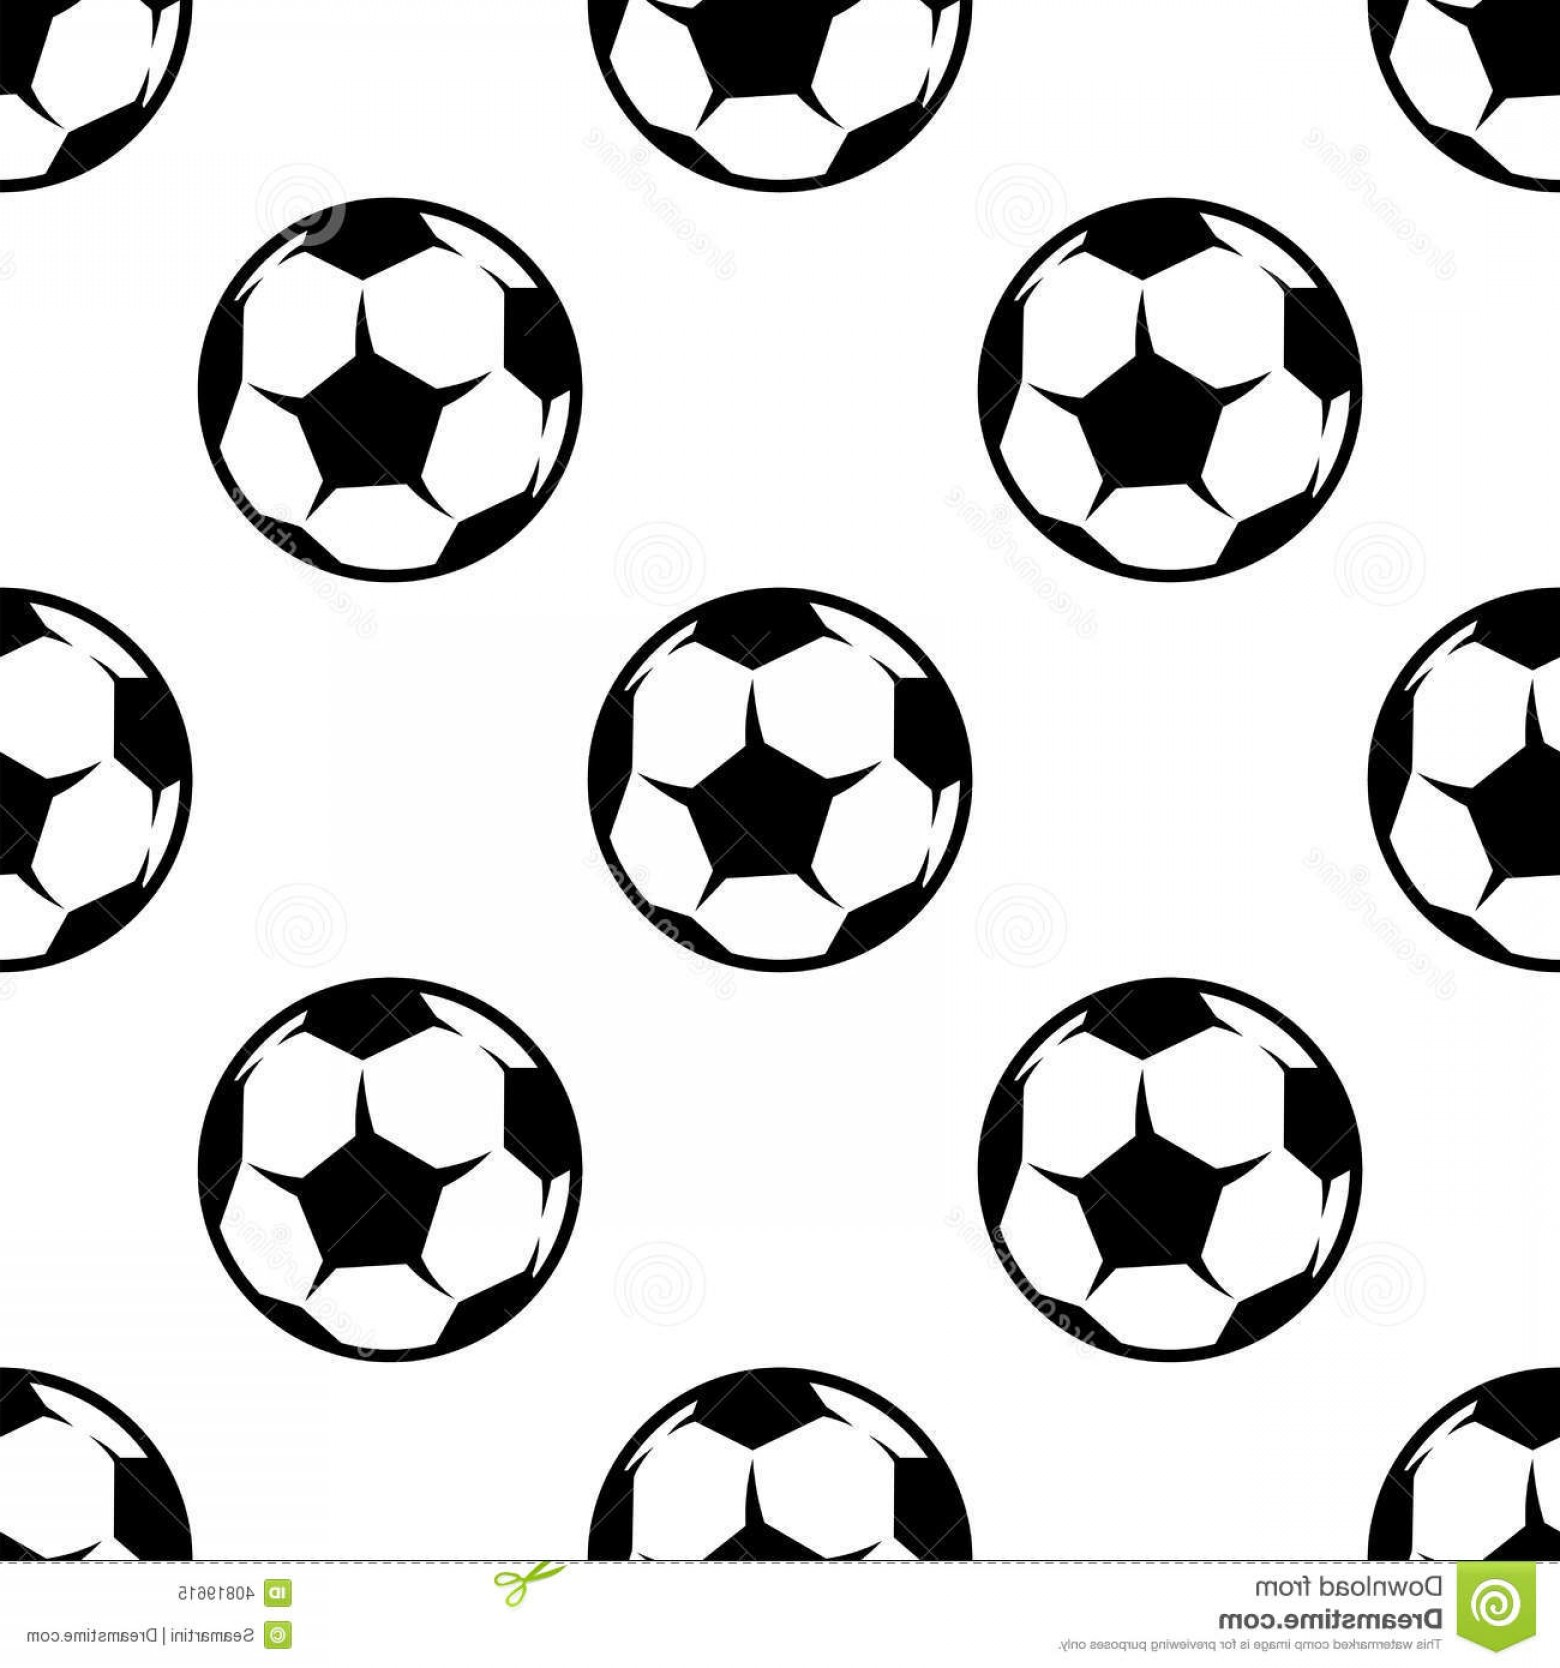 Football Vector Wallpaper: Royalty Free Stock Photo Soccer Football Seamless Pattern Sports Balls Background Wallpaper Textile Design Image